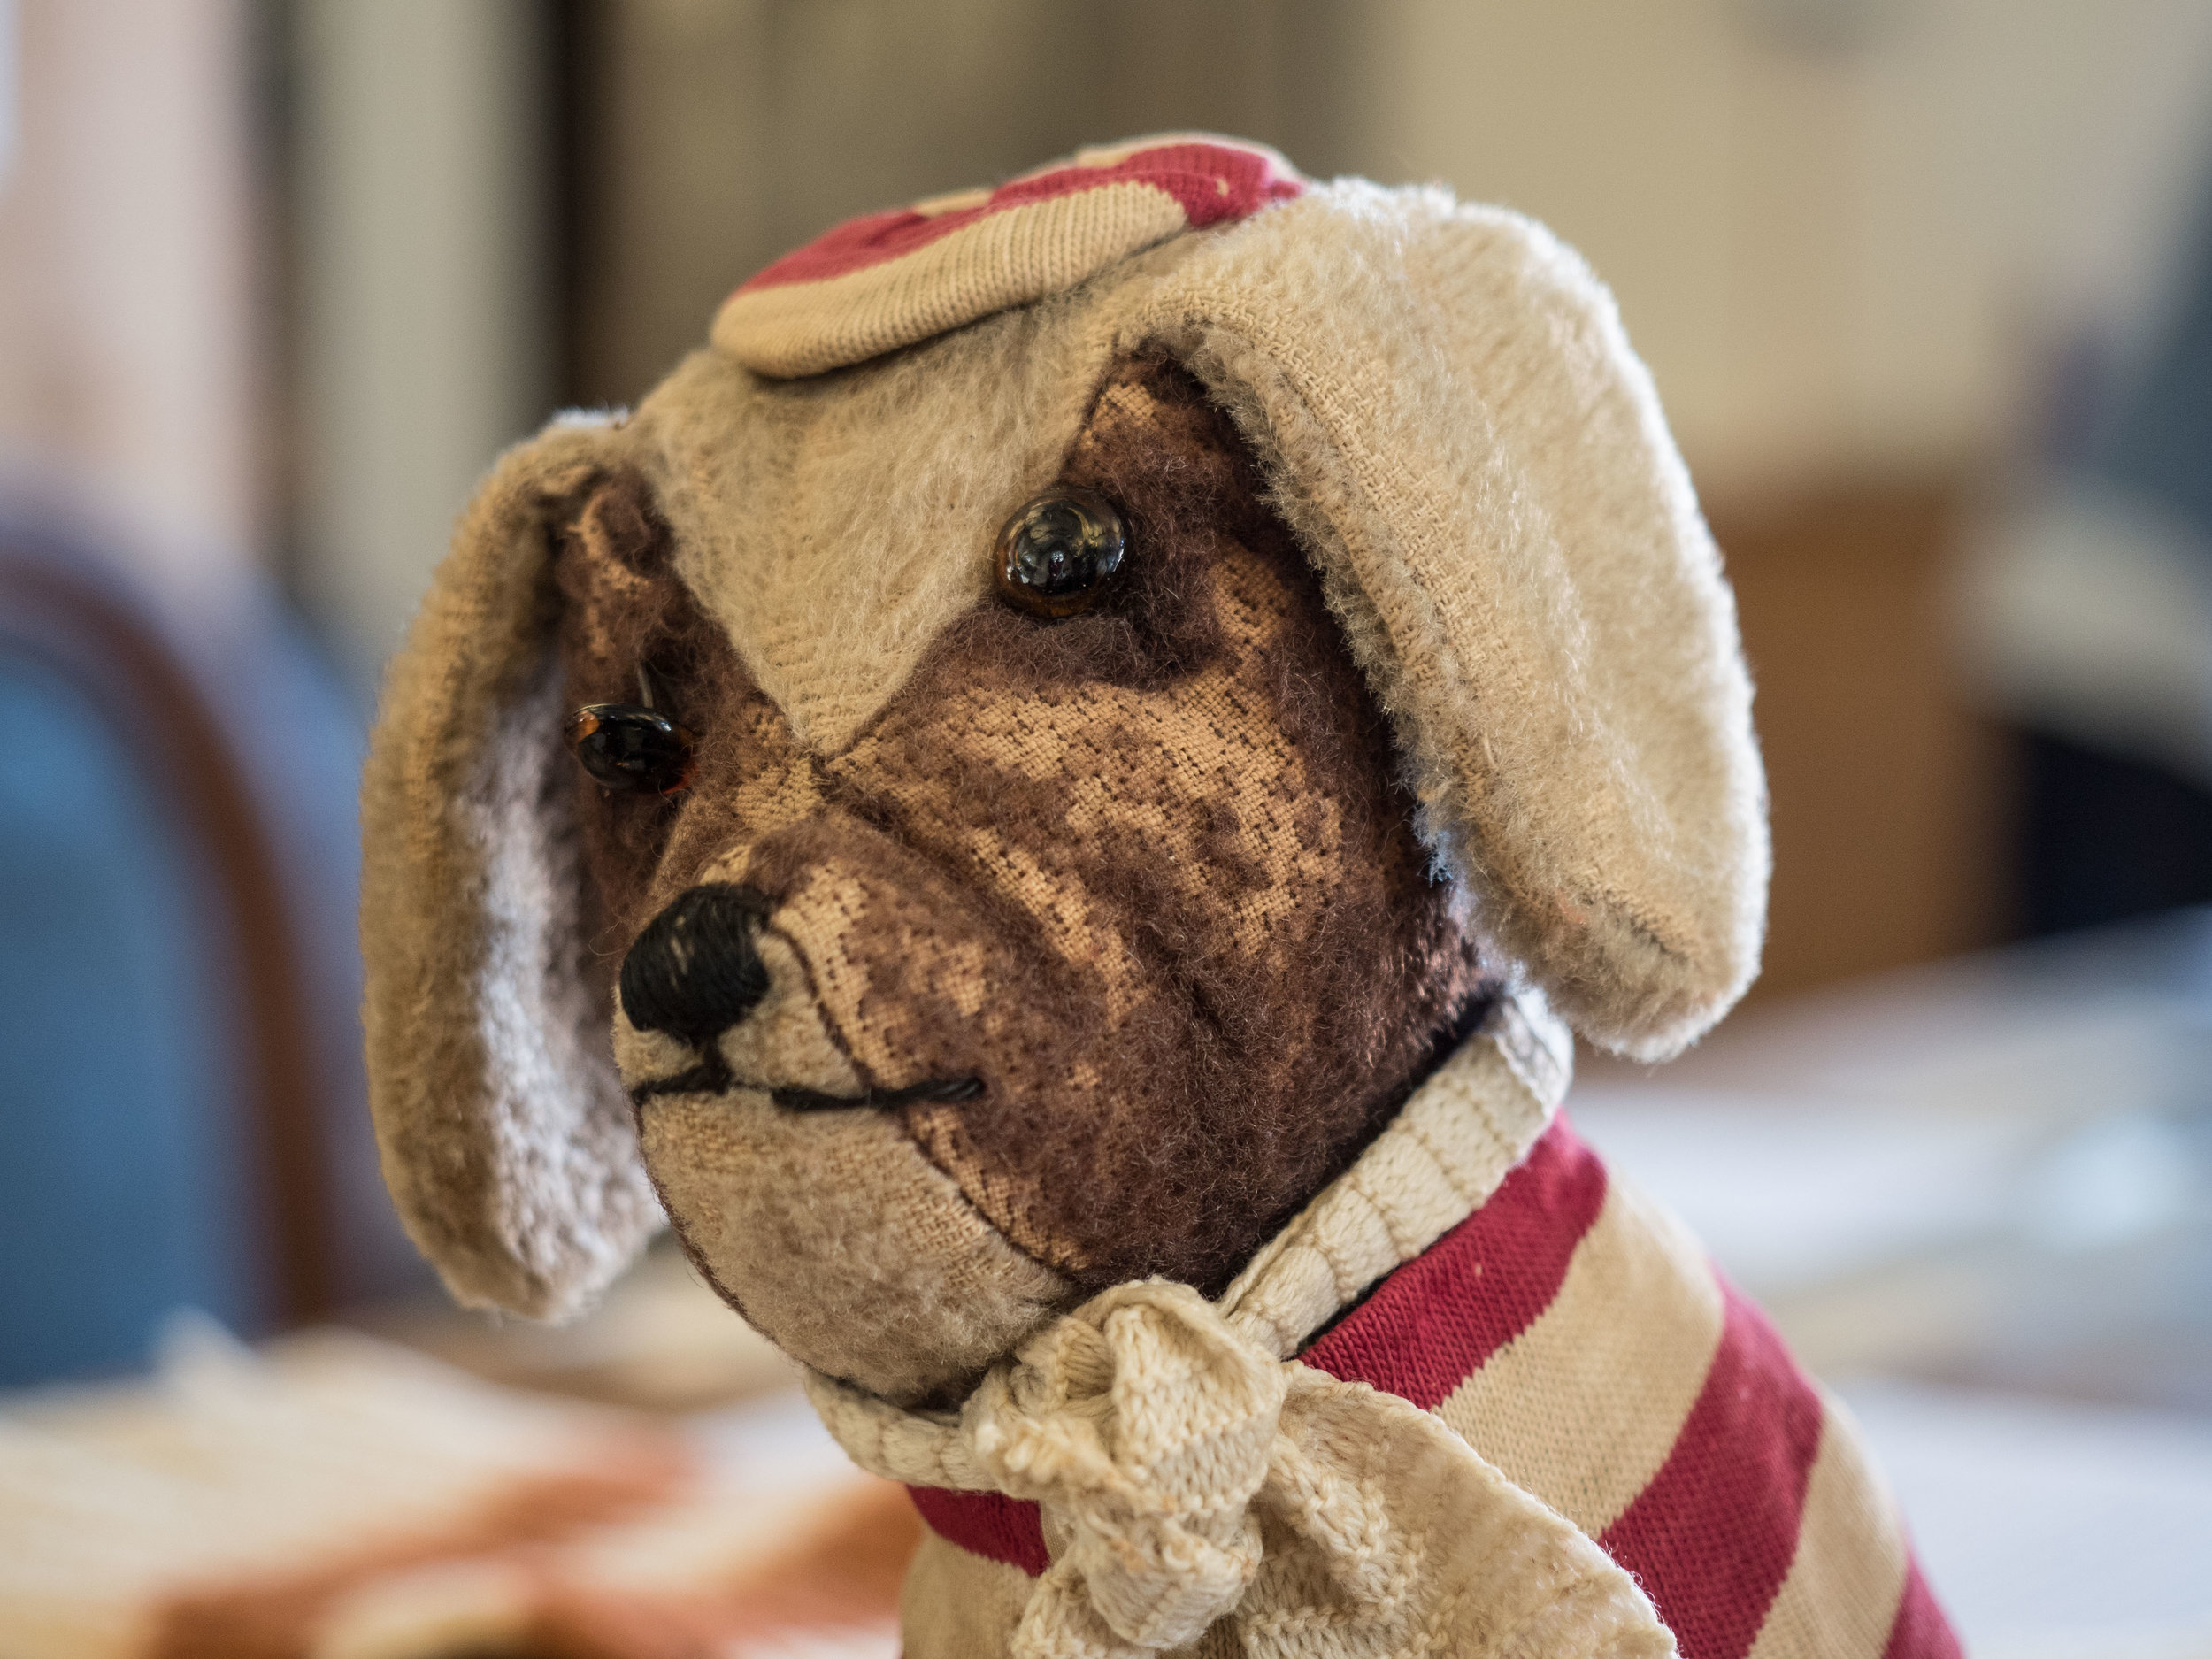 Winchester HODS teddy